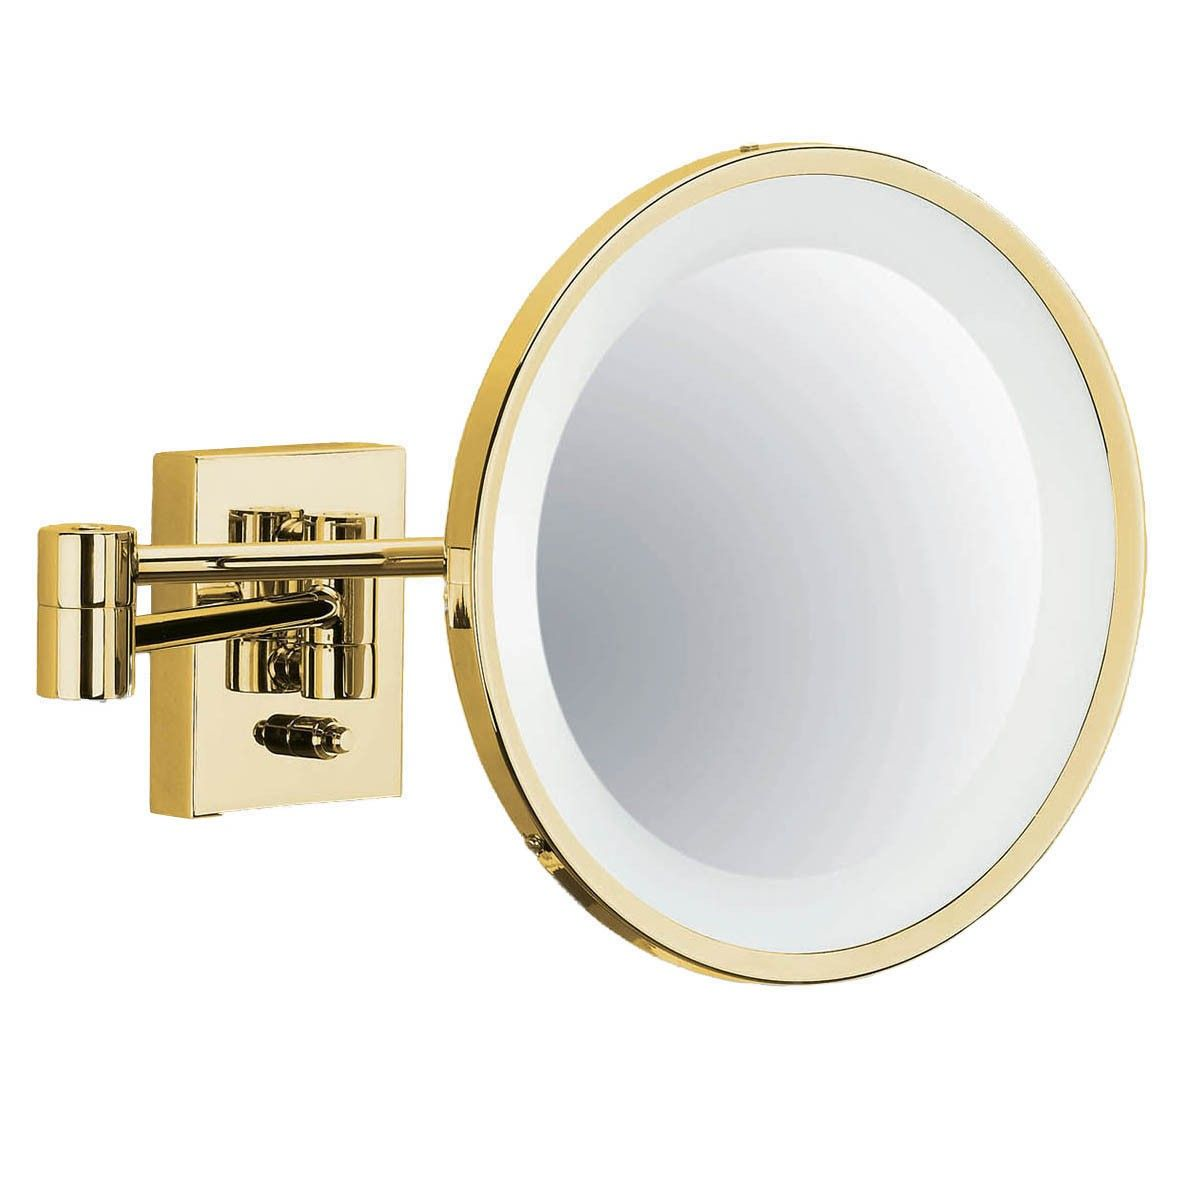 Smile 704 Gold Illuminated Magnifying Mirror From the Smile ...